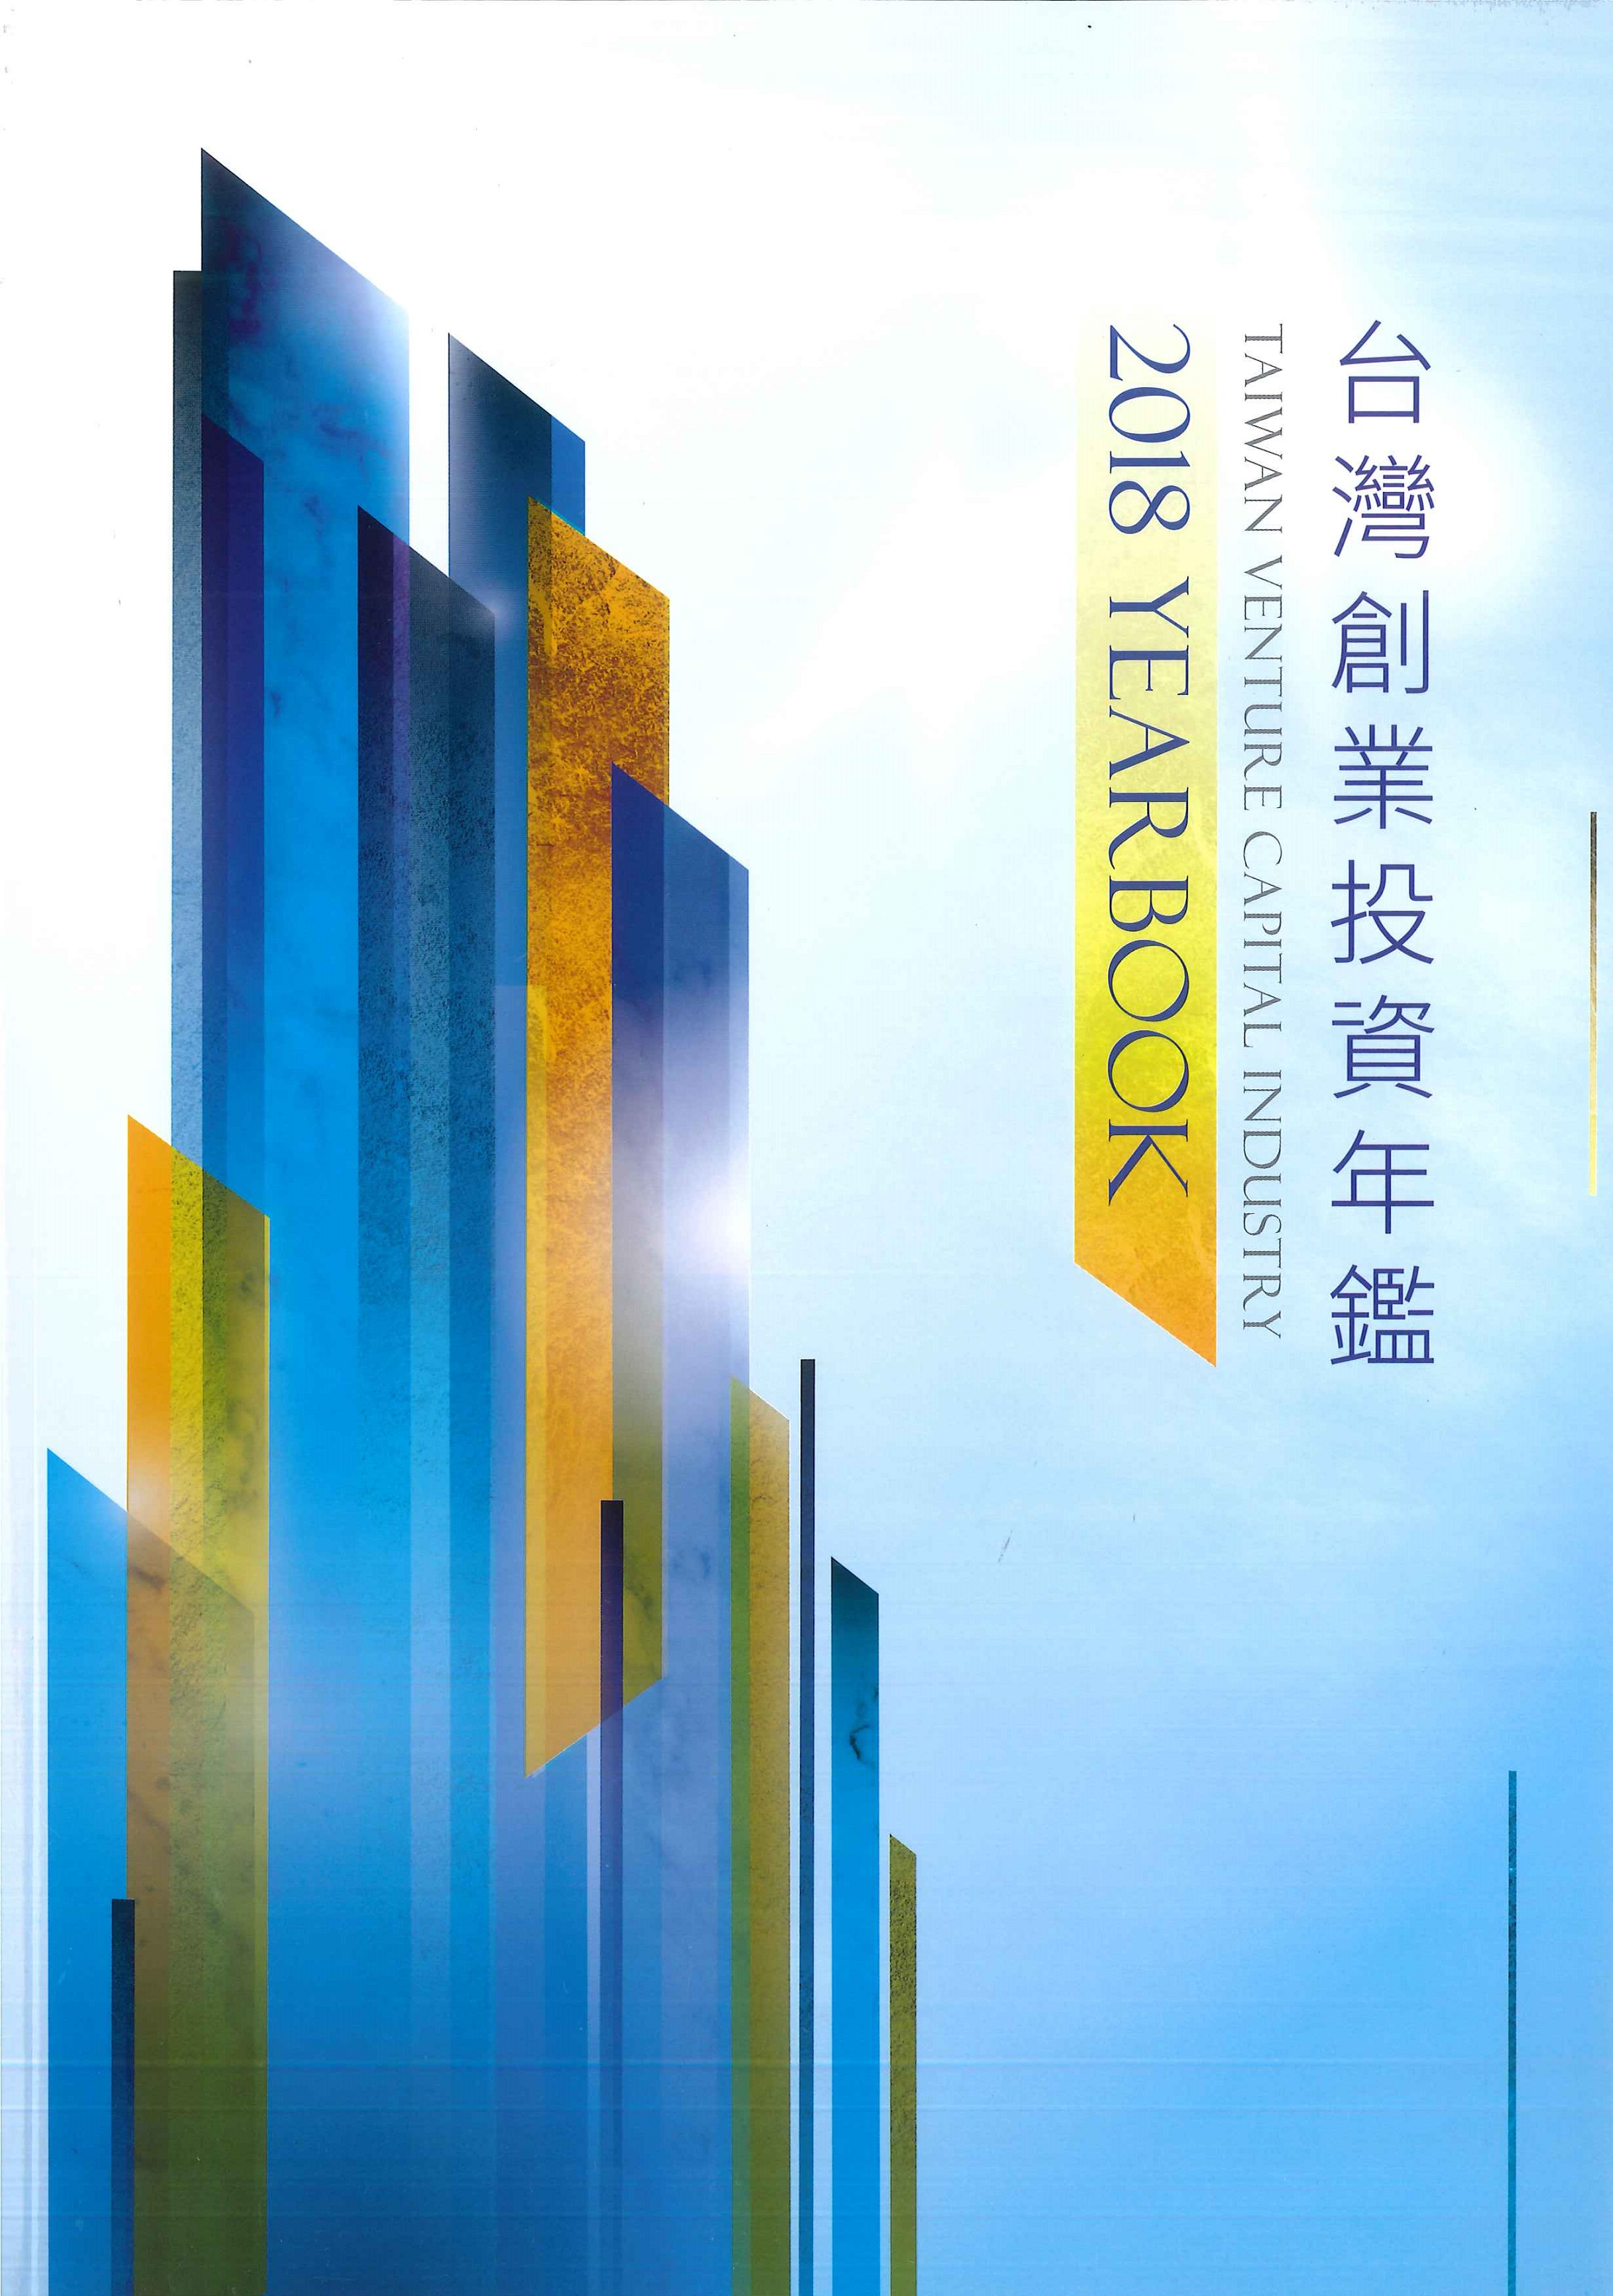 台灣創業投資年鑑=Taiwan Venture Capital Association yearbook